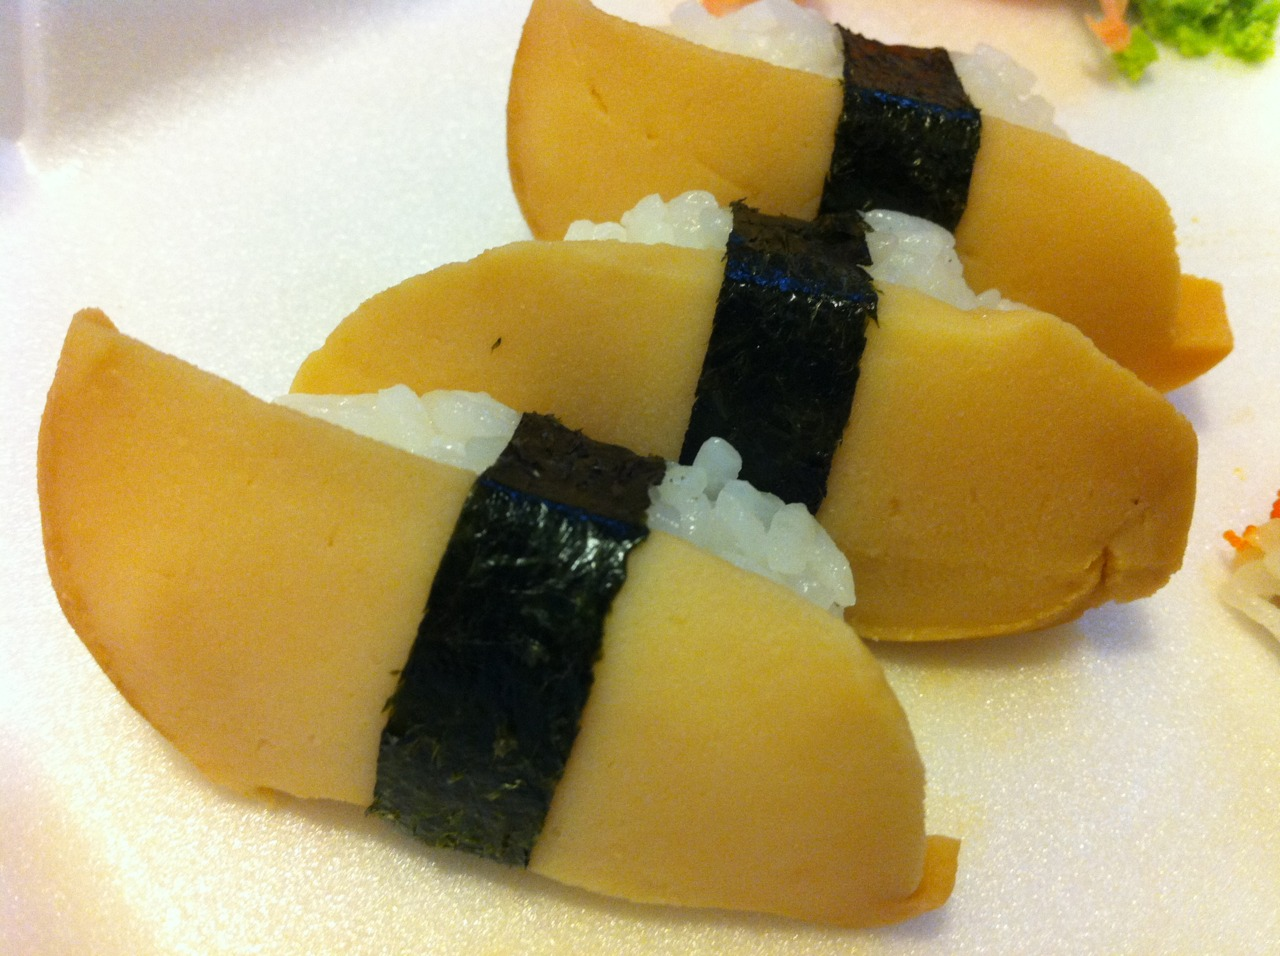 Our sushi chef made us a special treat last night, abalone! It was delicious, melted in my mouth.